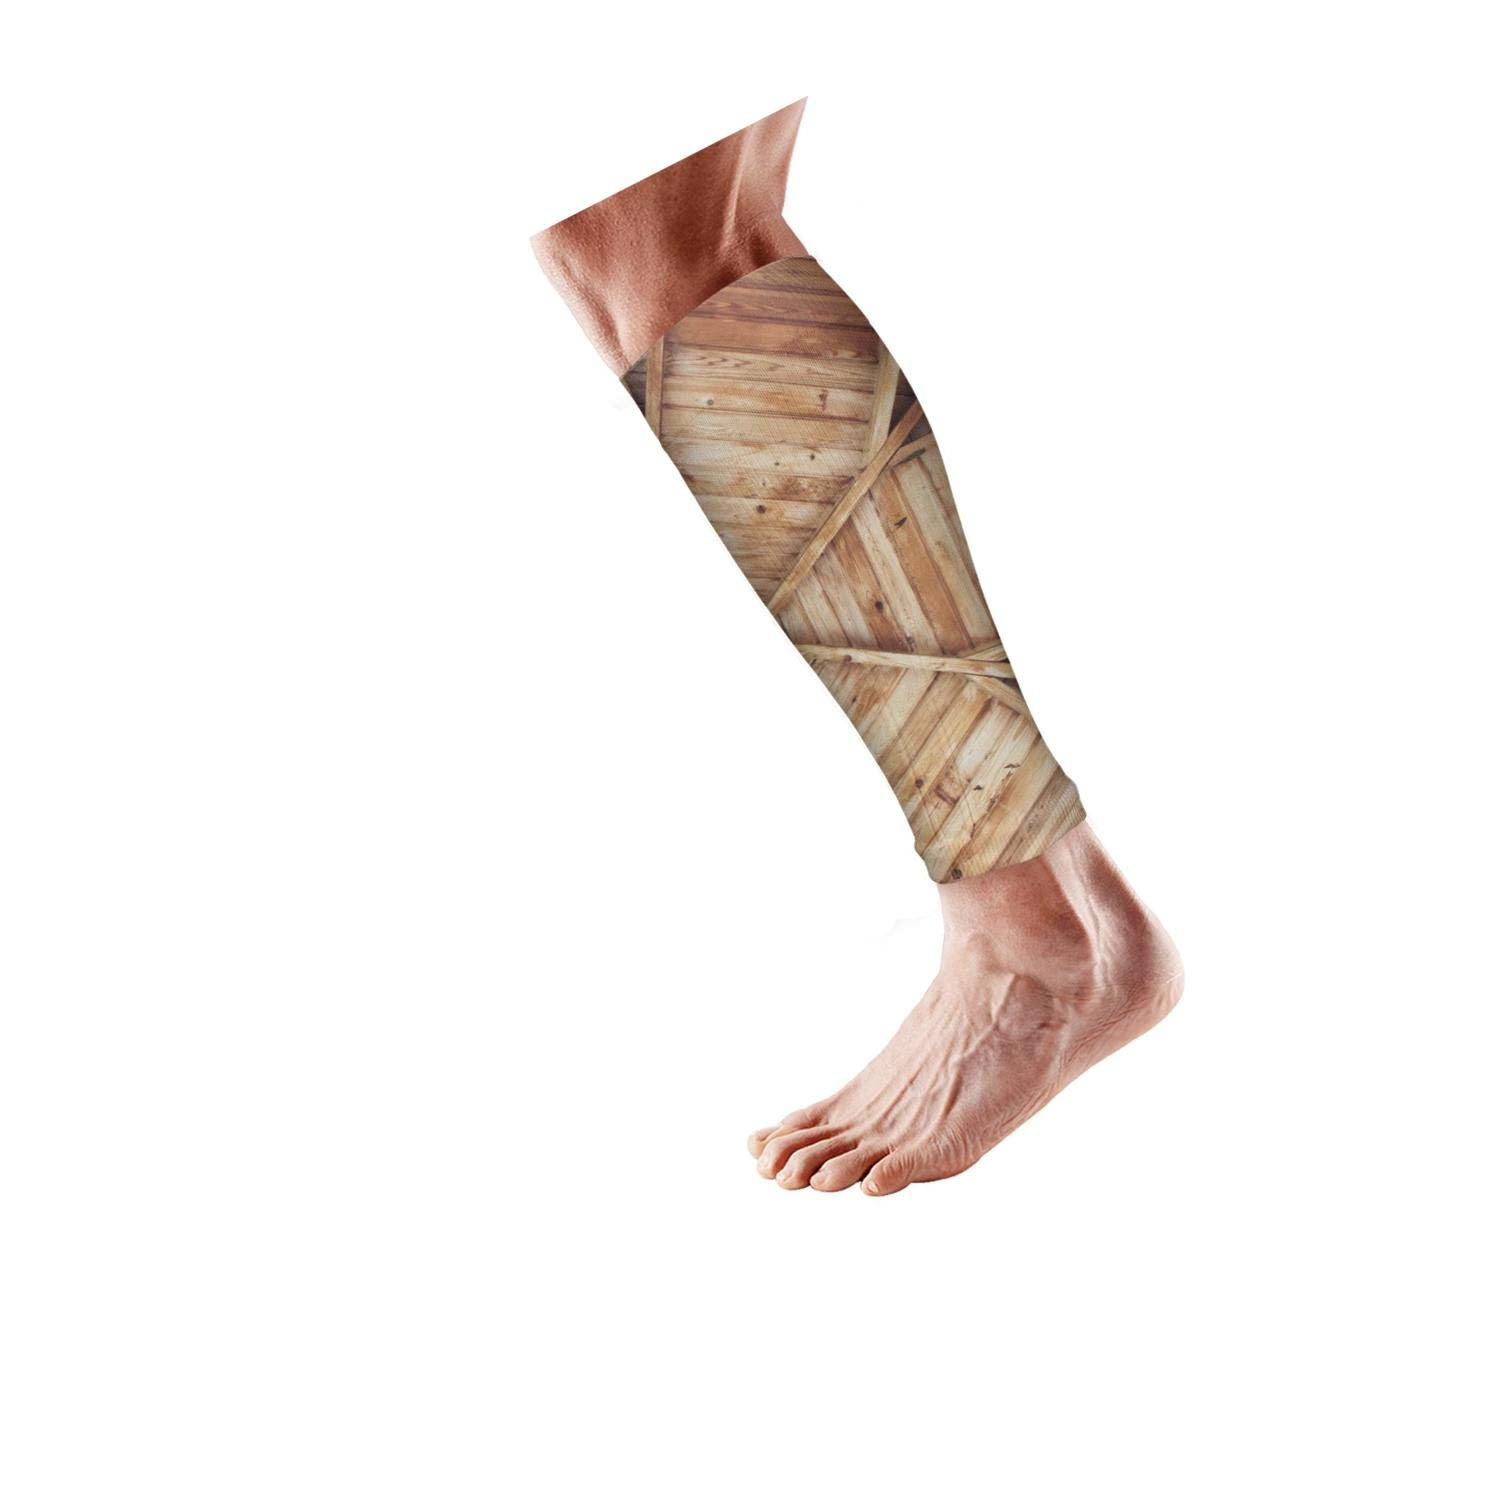 Smilelolly rustic Wooden Farmhouse Calf Compression Sleeves Helps Pain Relief Leg Sleeves for Men Women